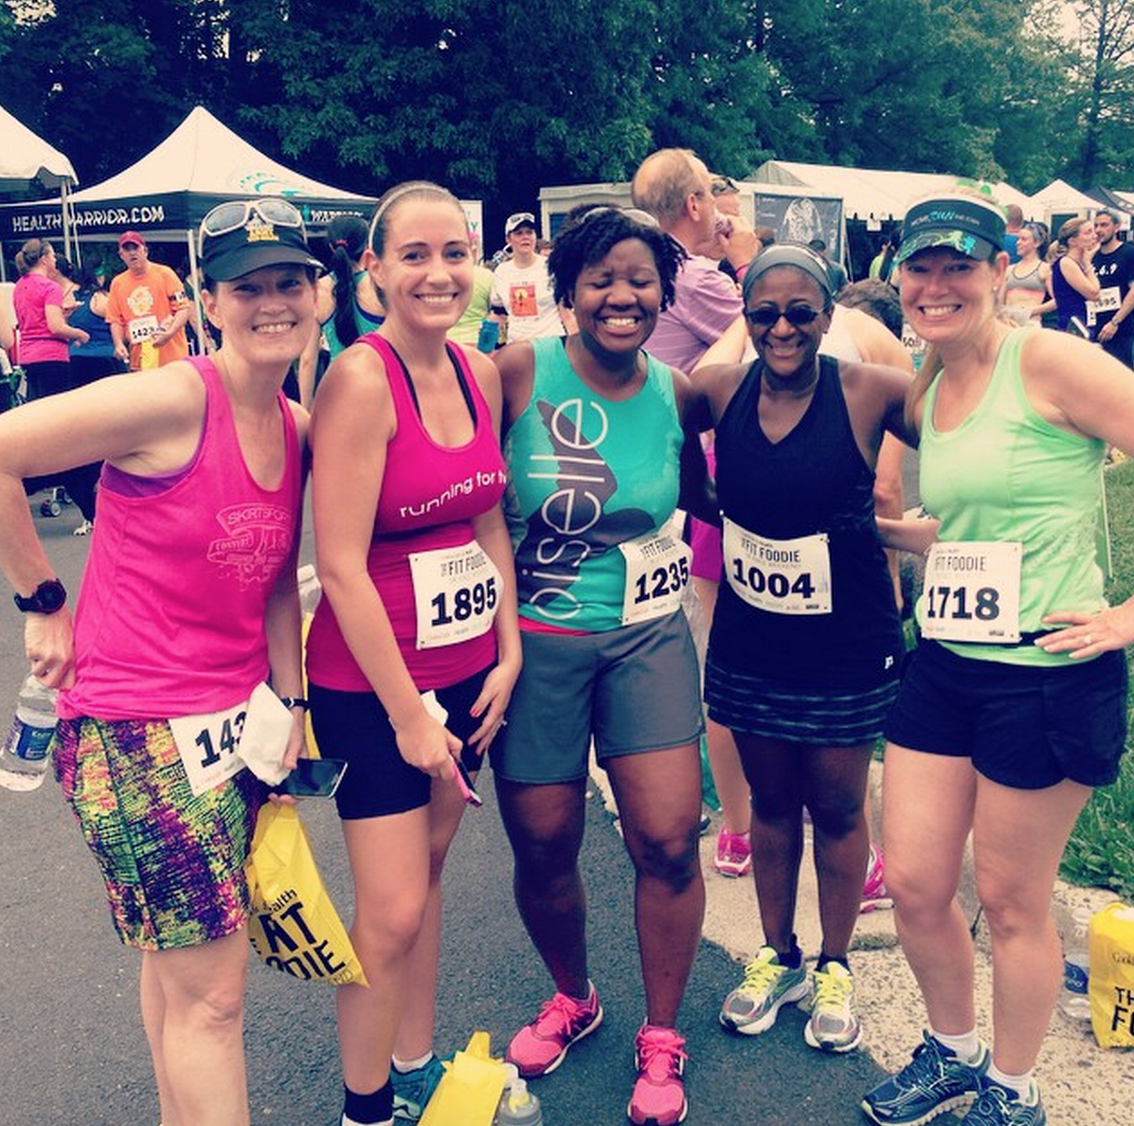 Fit Foodie 5K finish